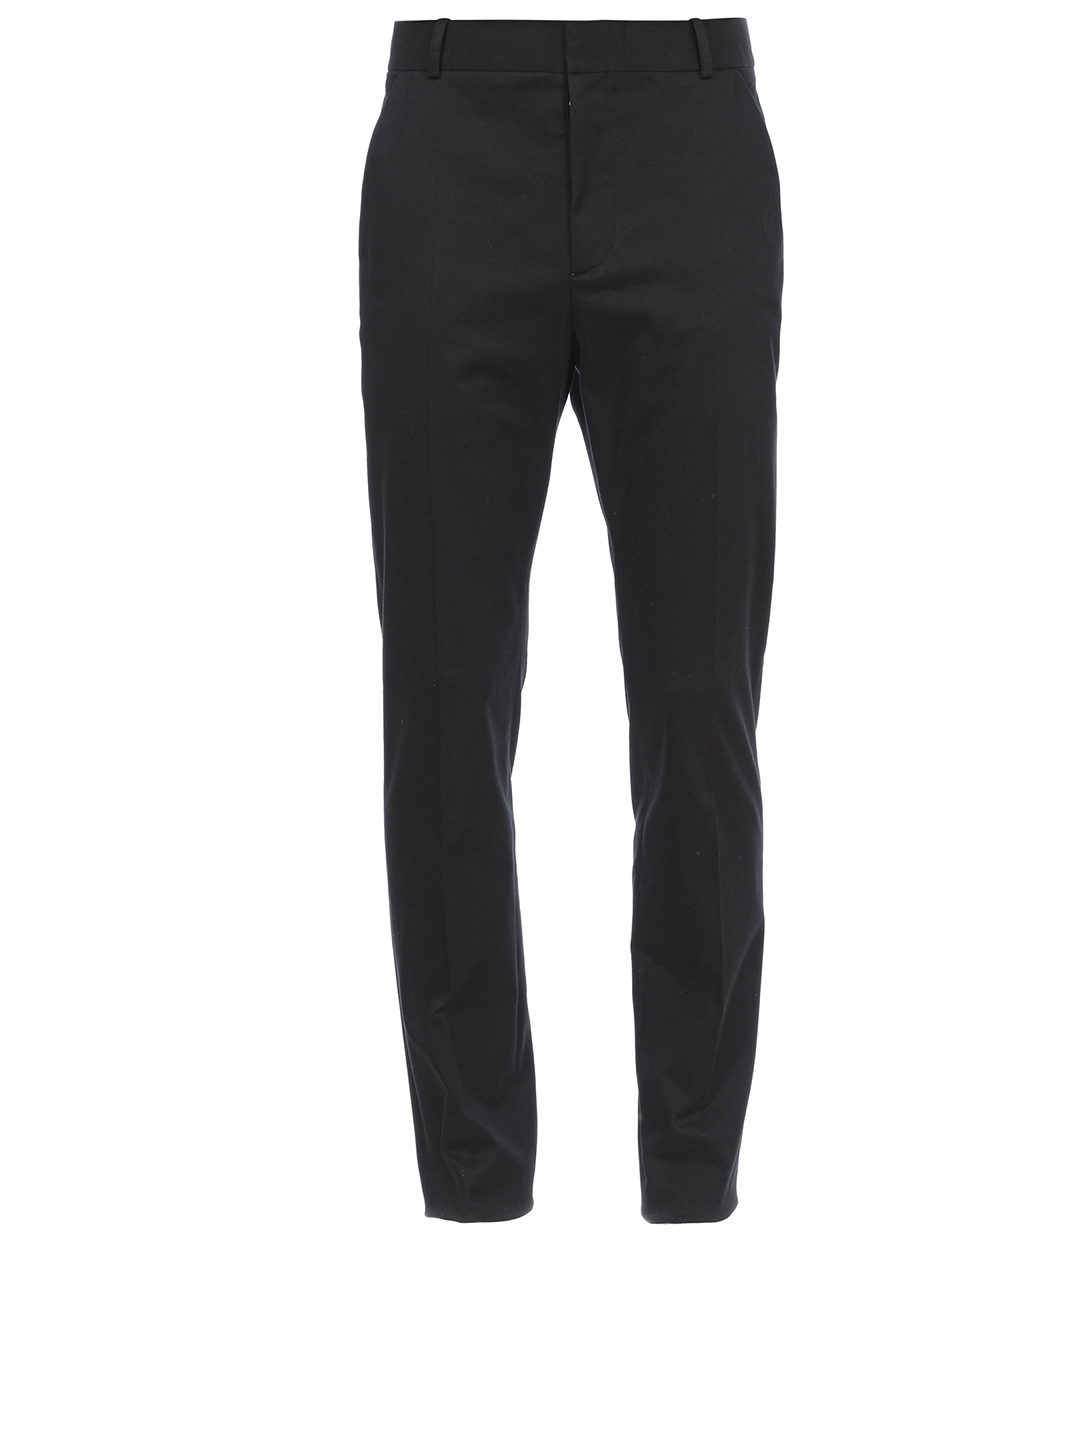 BALMAIN Cotton Stretch Tailored Pants Men's Black